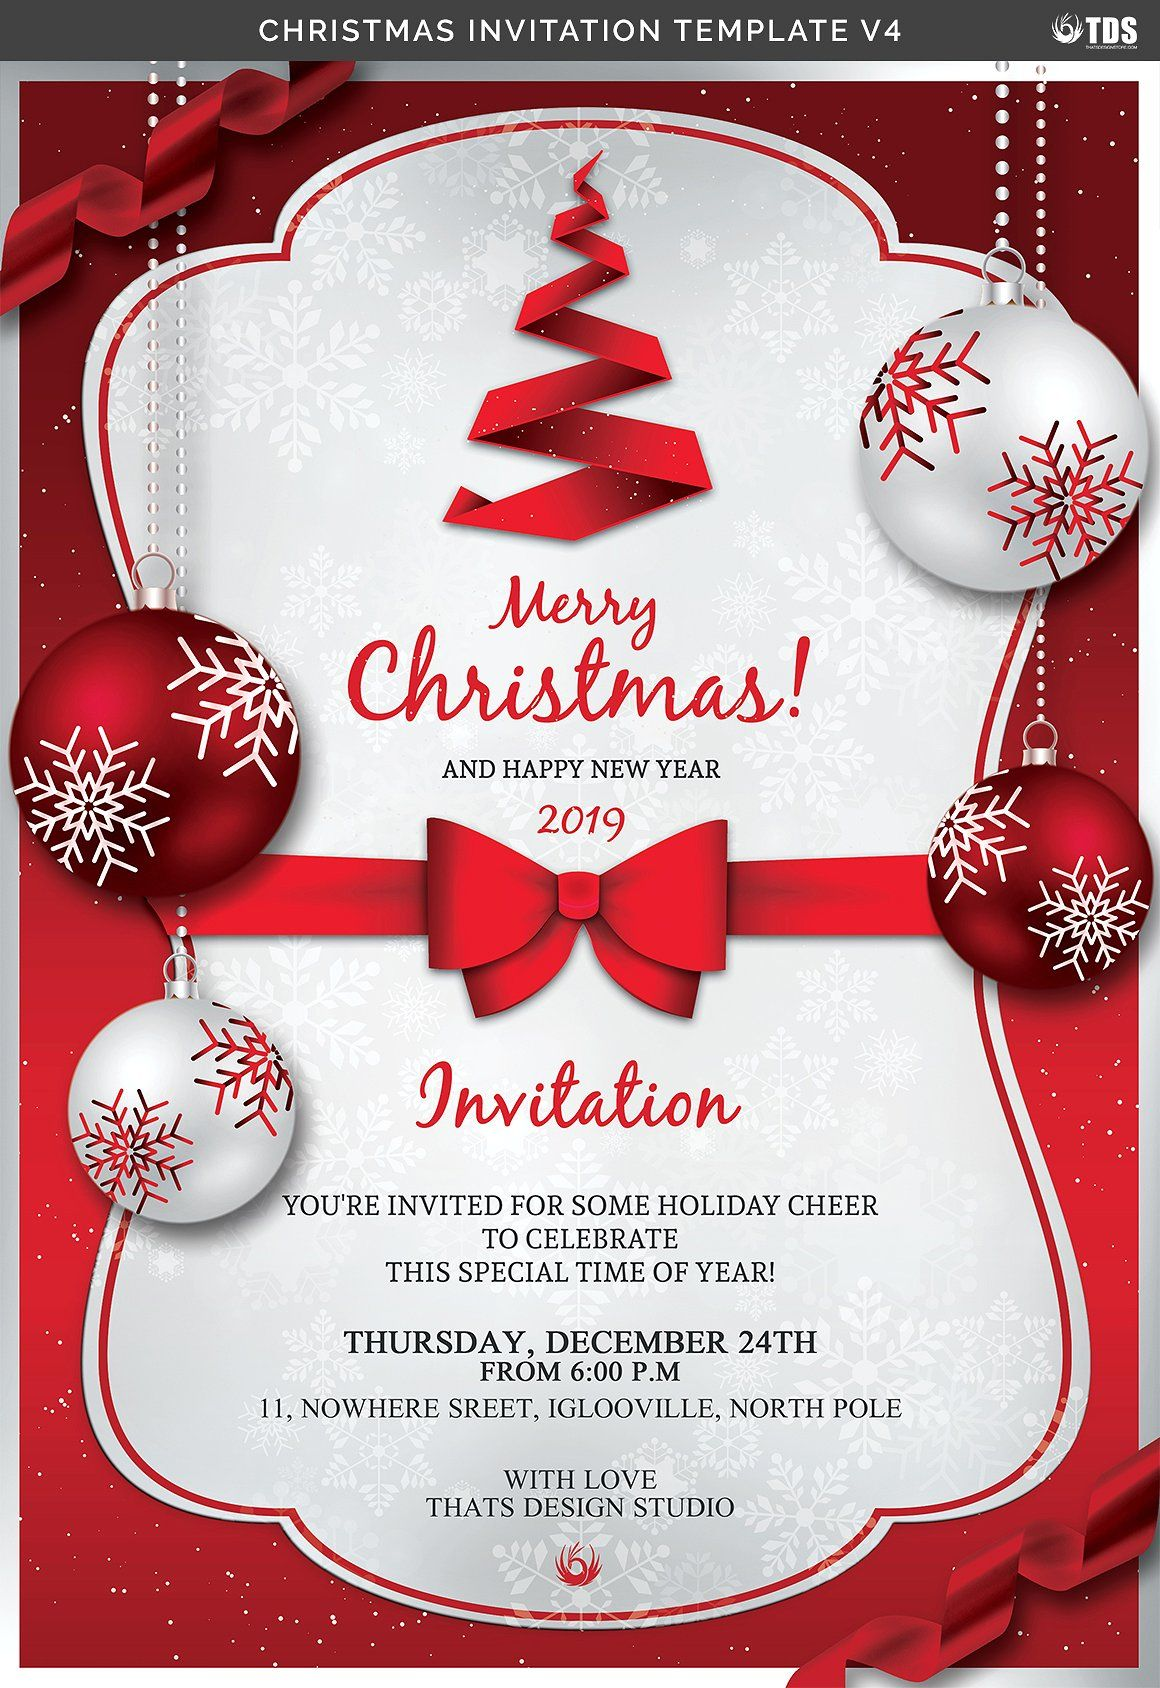 Christmas Invitation Template V4 Christmas Party Invitation Template Free Christmas Invitation Templates Christmas Invitations Template